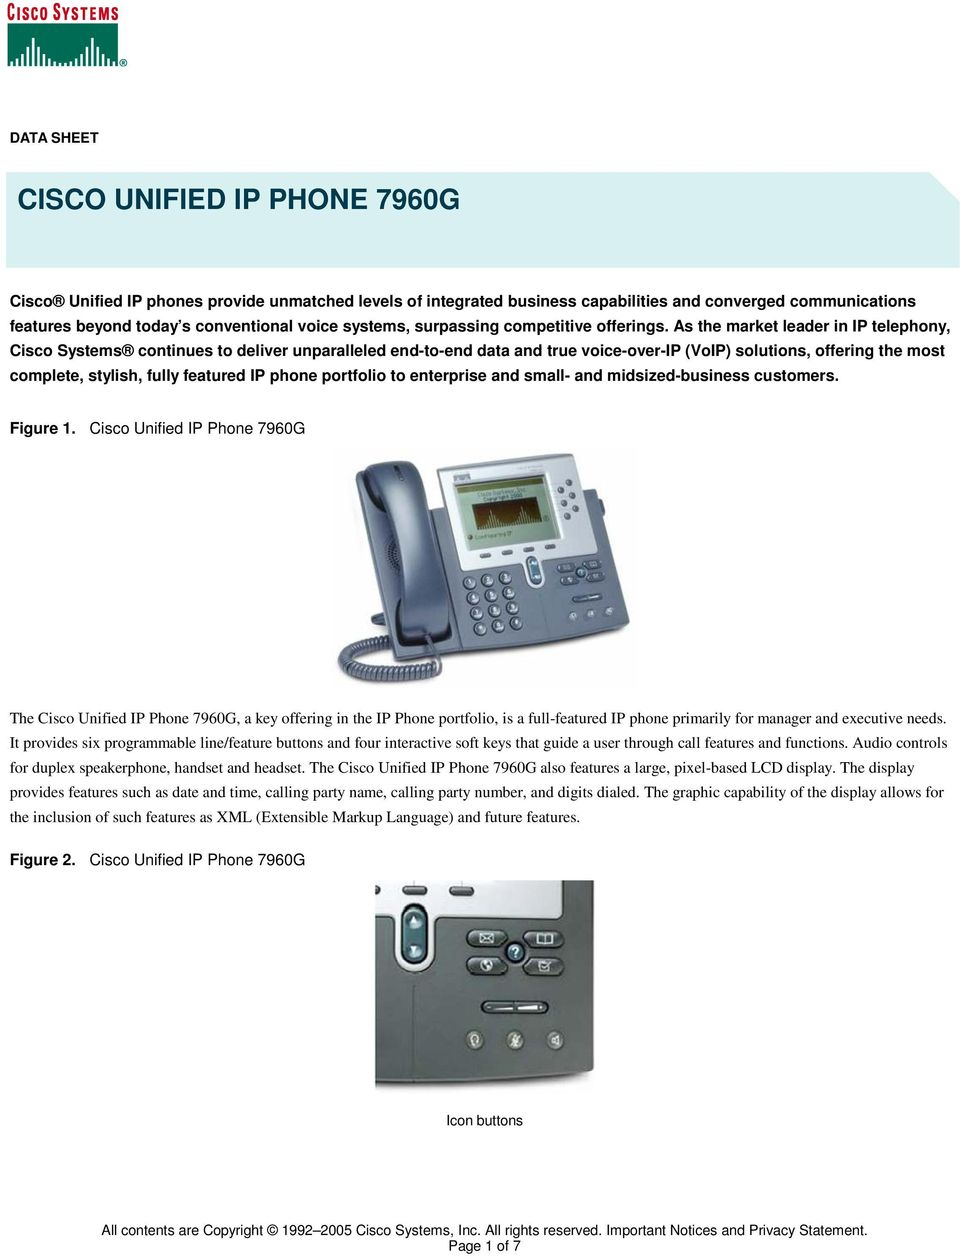 As the market leader in IP telephony, Cisco Systems continues to deliver unparalleled end-to-end data and true voice-over-ip (VoIP) solutions, offering the most complete, stylish, fully featured IP